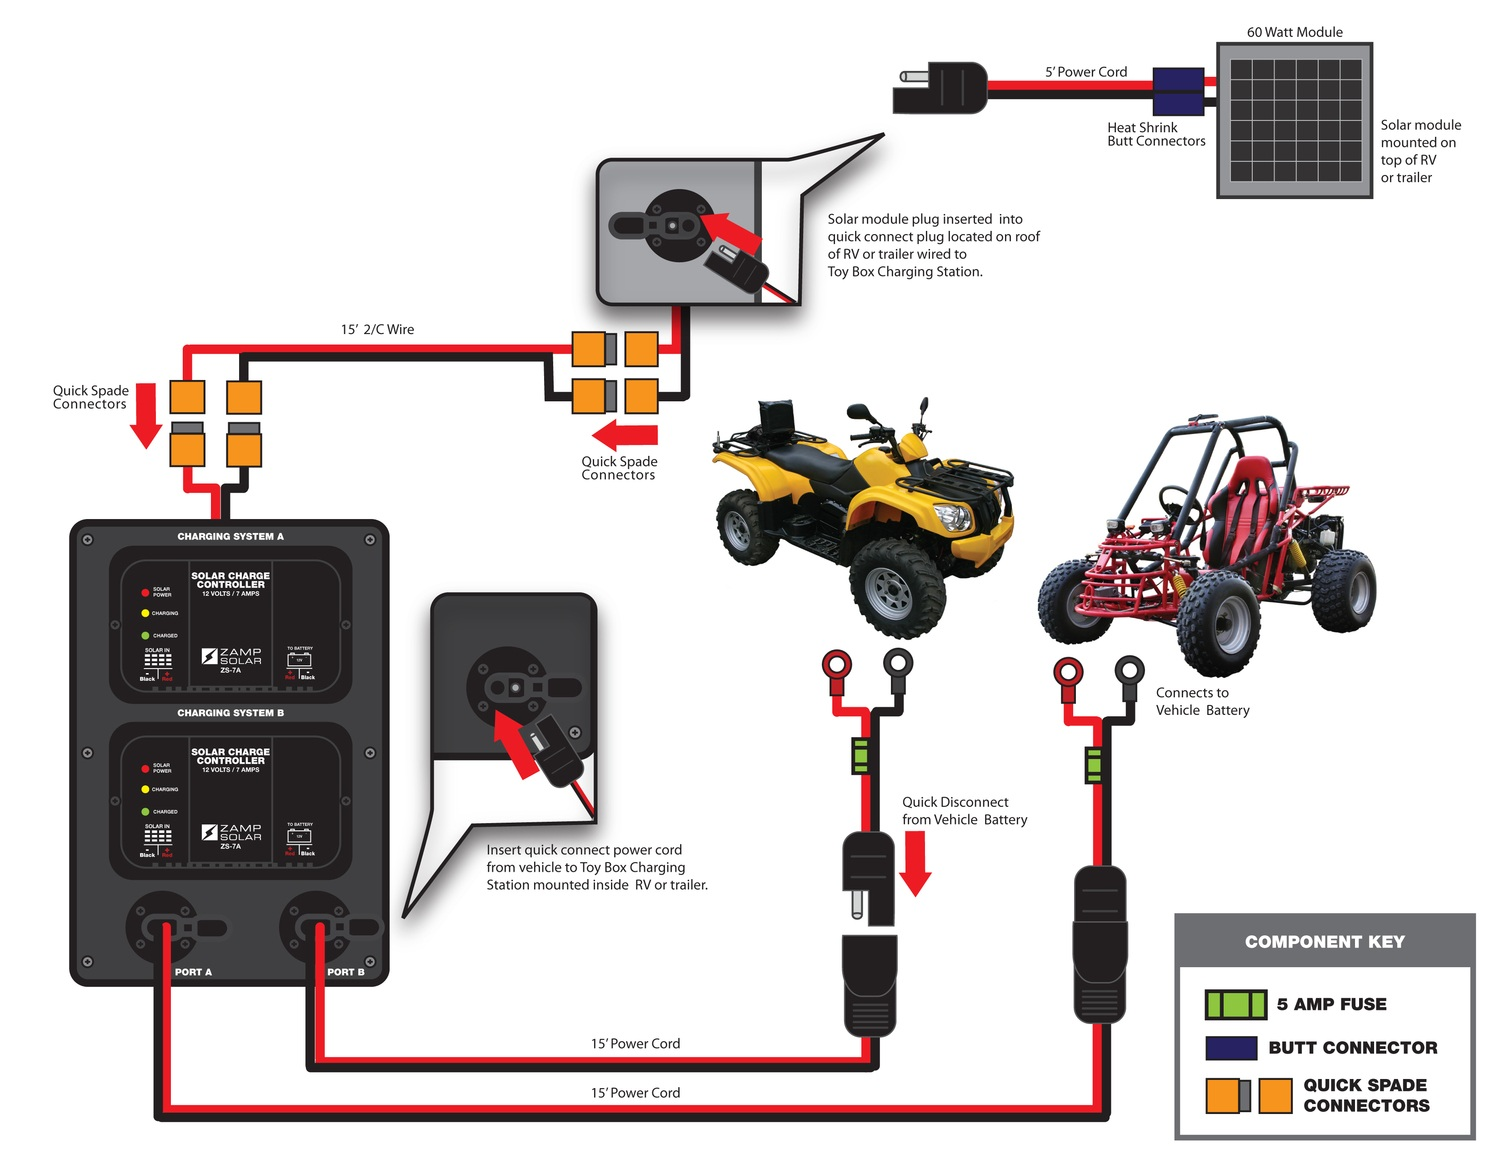 Diagram Wiring Diagram For Toybox Solar Battery Charging System